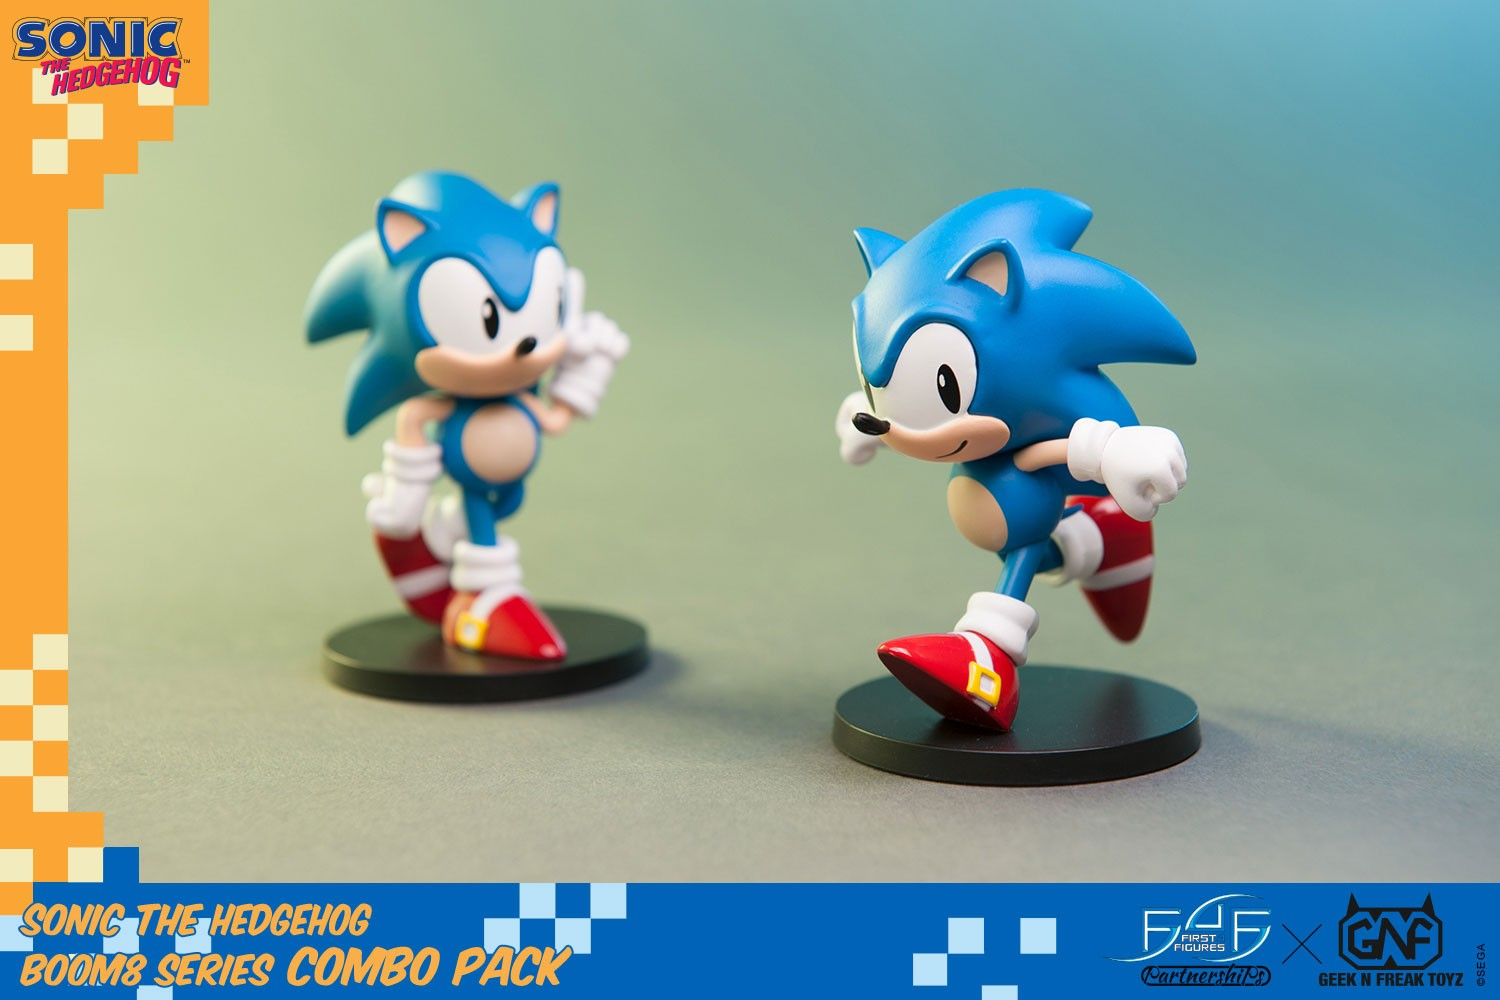 Sonic The Hedgehog Boom8 Series Combo Pack